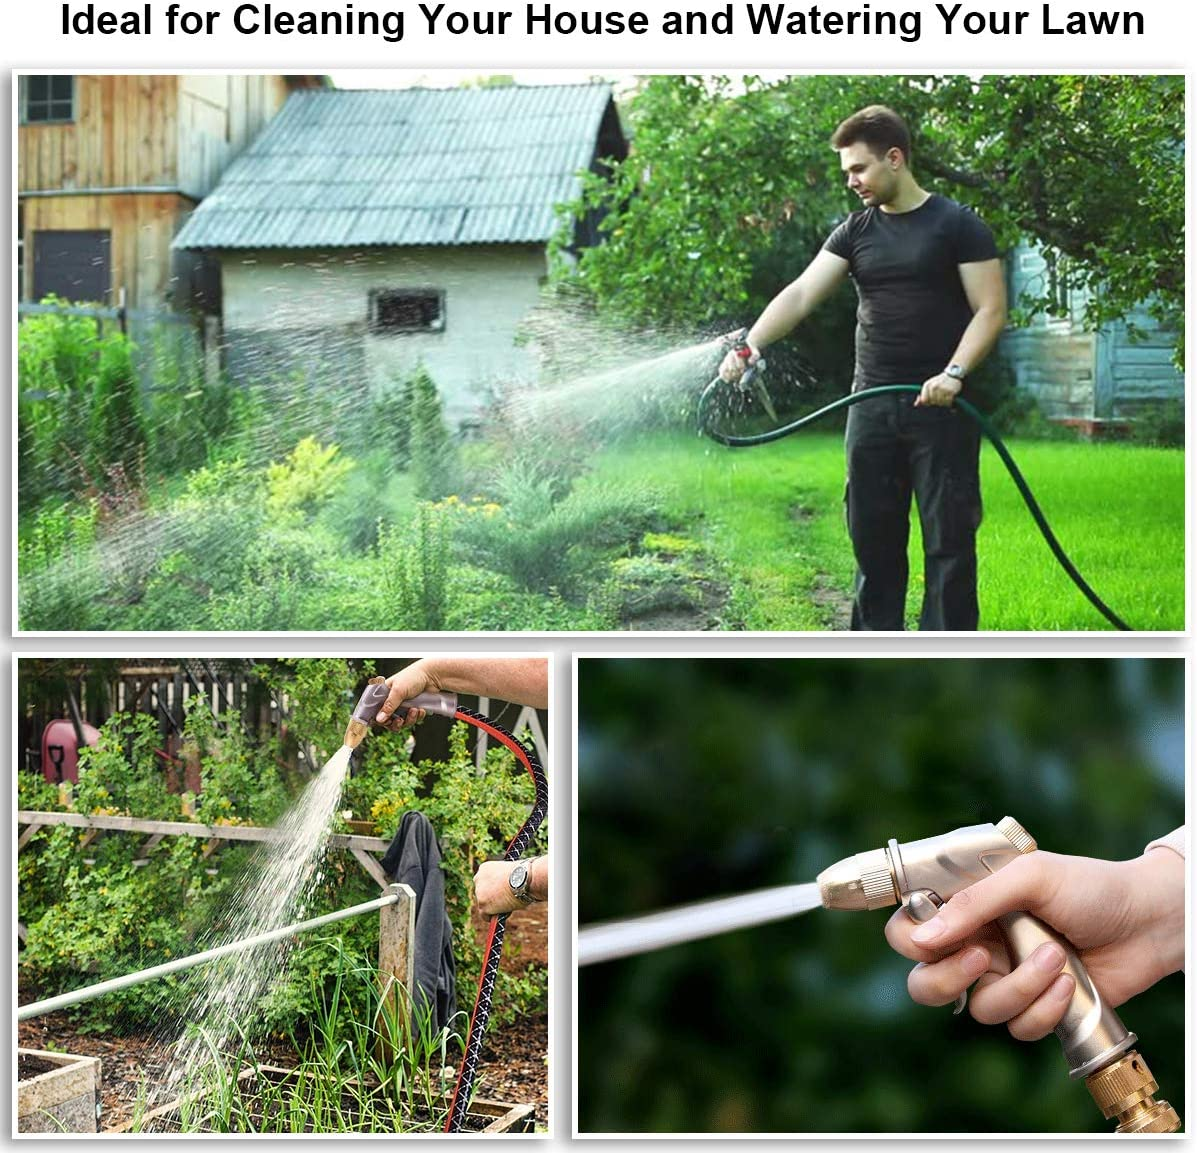 Car Wash and Showering Pets Cleaning Garden Hose Nozzle Heavy Duty Metal Hose Spray Nozzle Water Hose Sprayer Nozzle 4 Adjustable Watering Patterns Pistol Grip Hose End Sprayer for Watering Plants